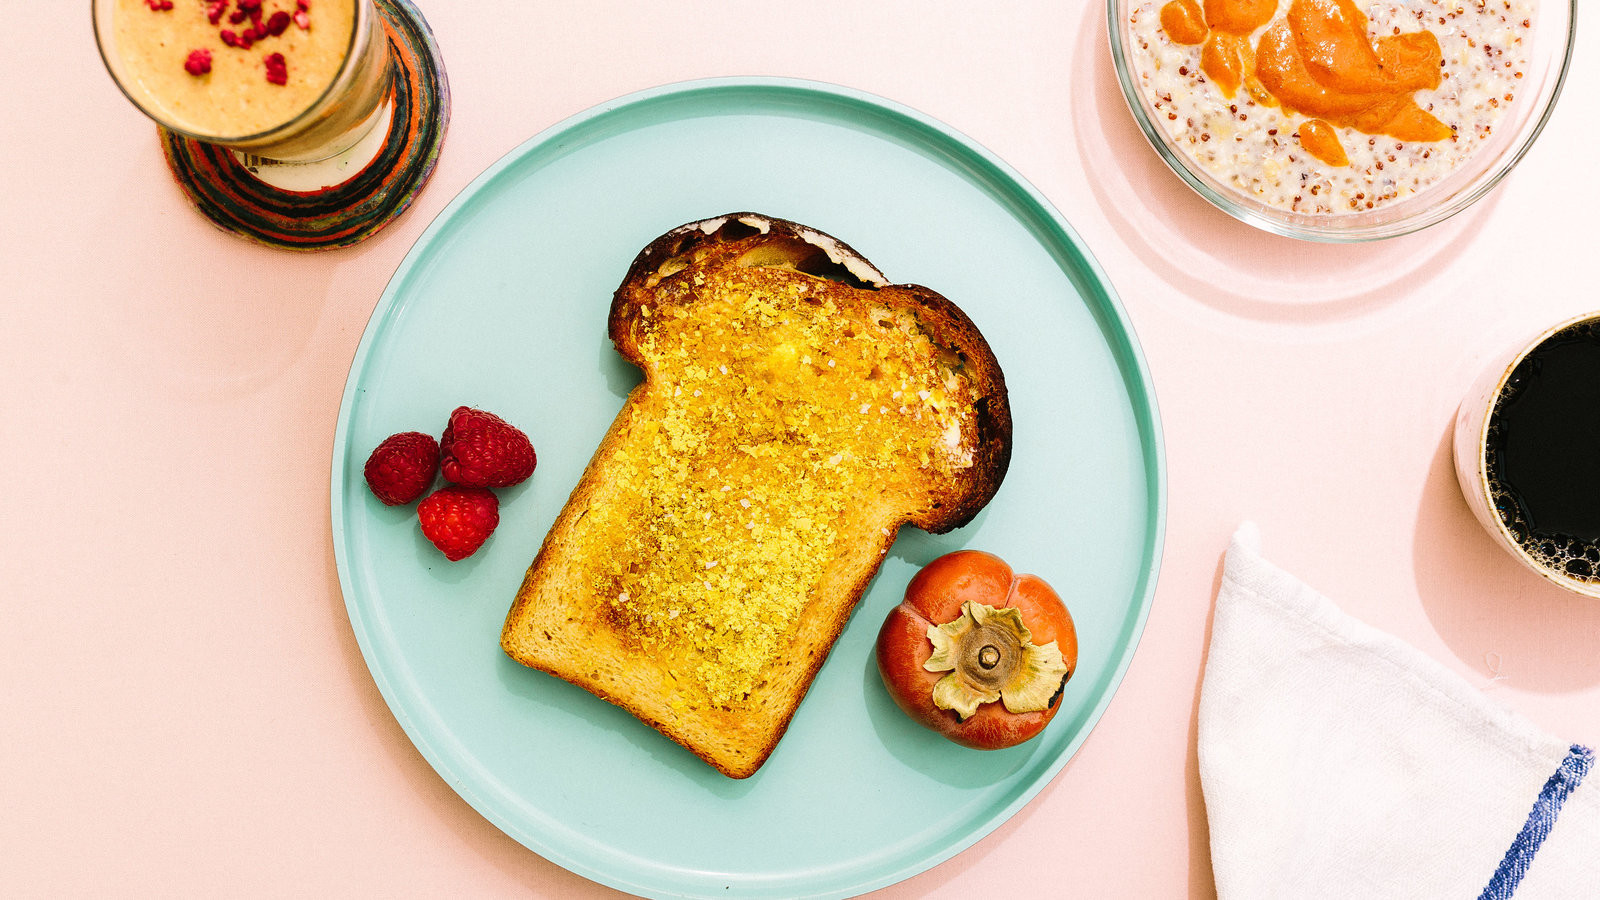 Healthy Breakfast New York  Persimmons for Breakfast Two Healthy Ways The New